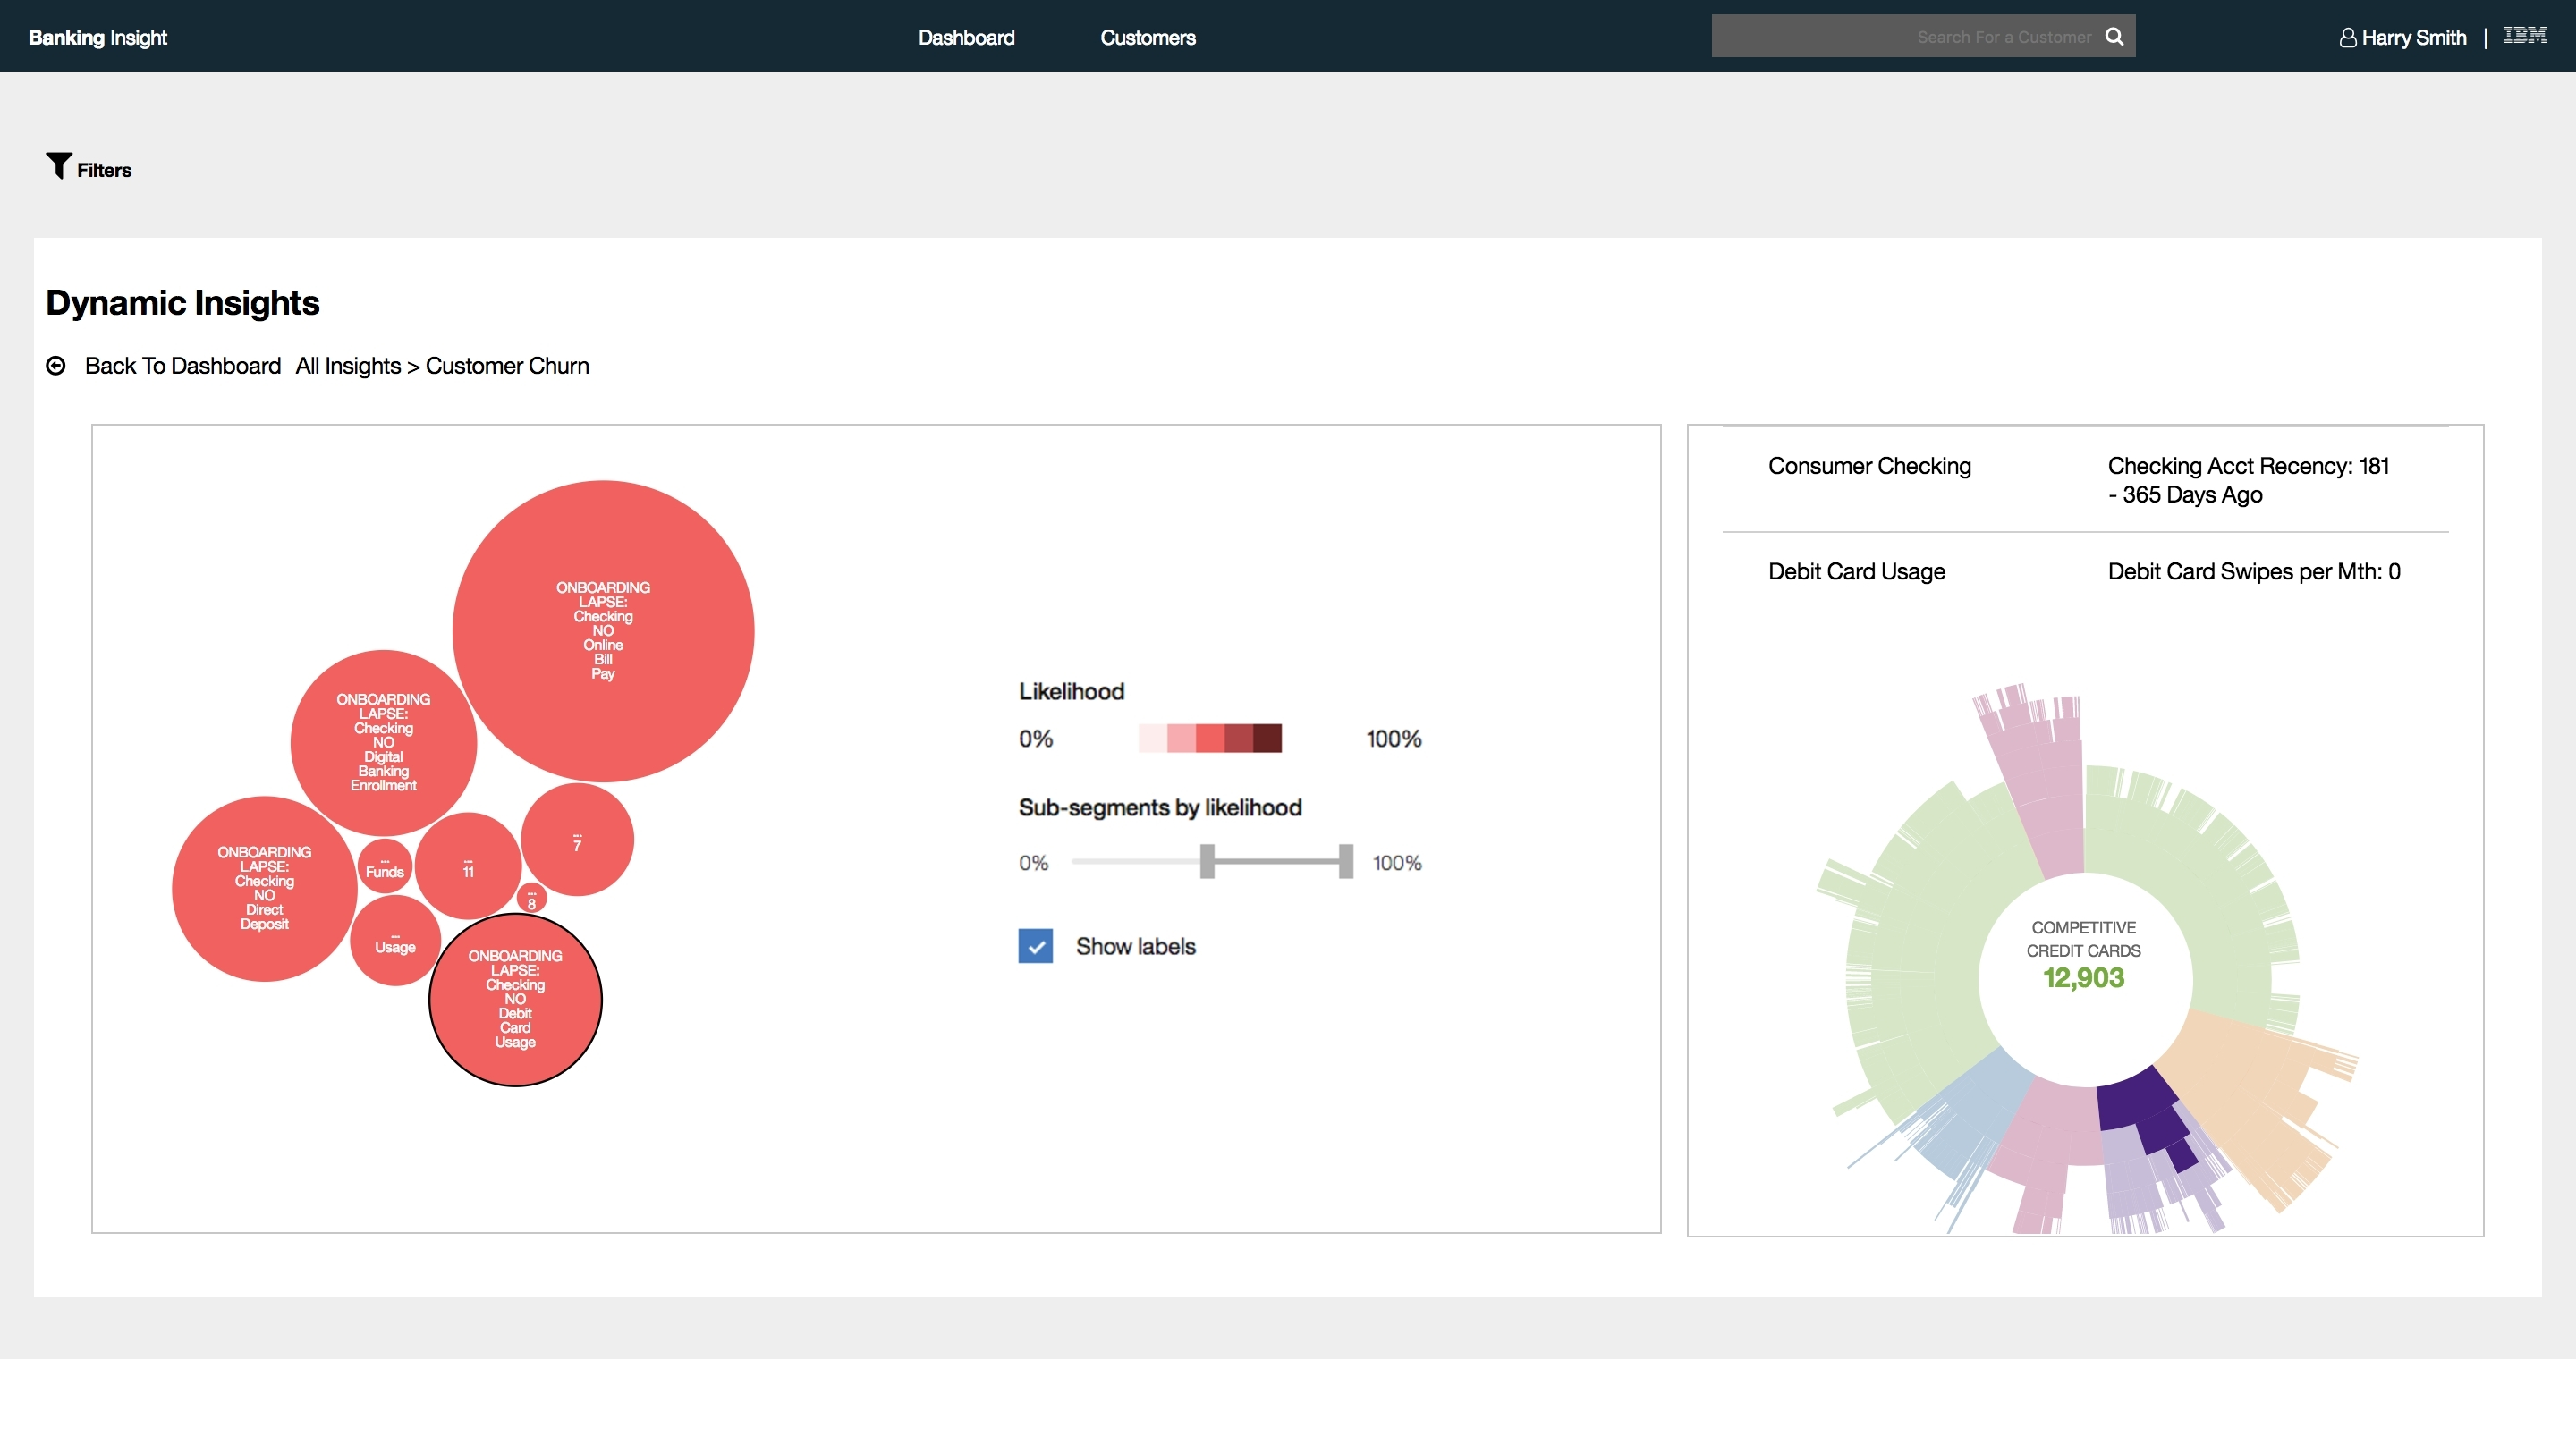 Segmint Announces Strategic Partnership With Ibm To Enhance Machines Wiring Diagram Wires Financial Institutions Data Business Wire